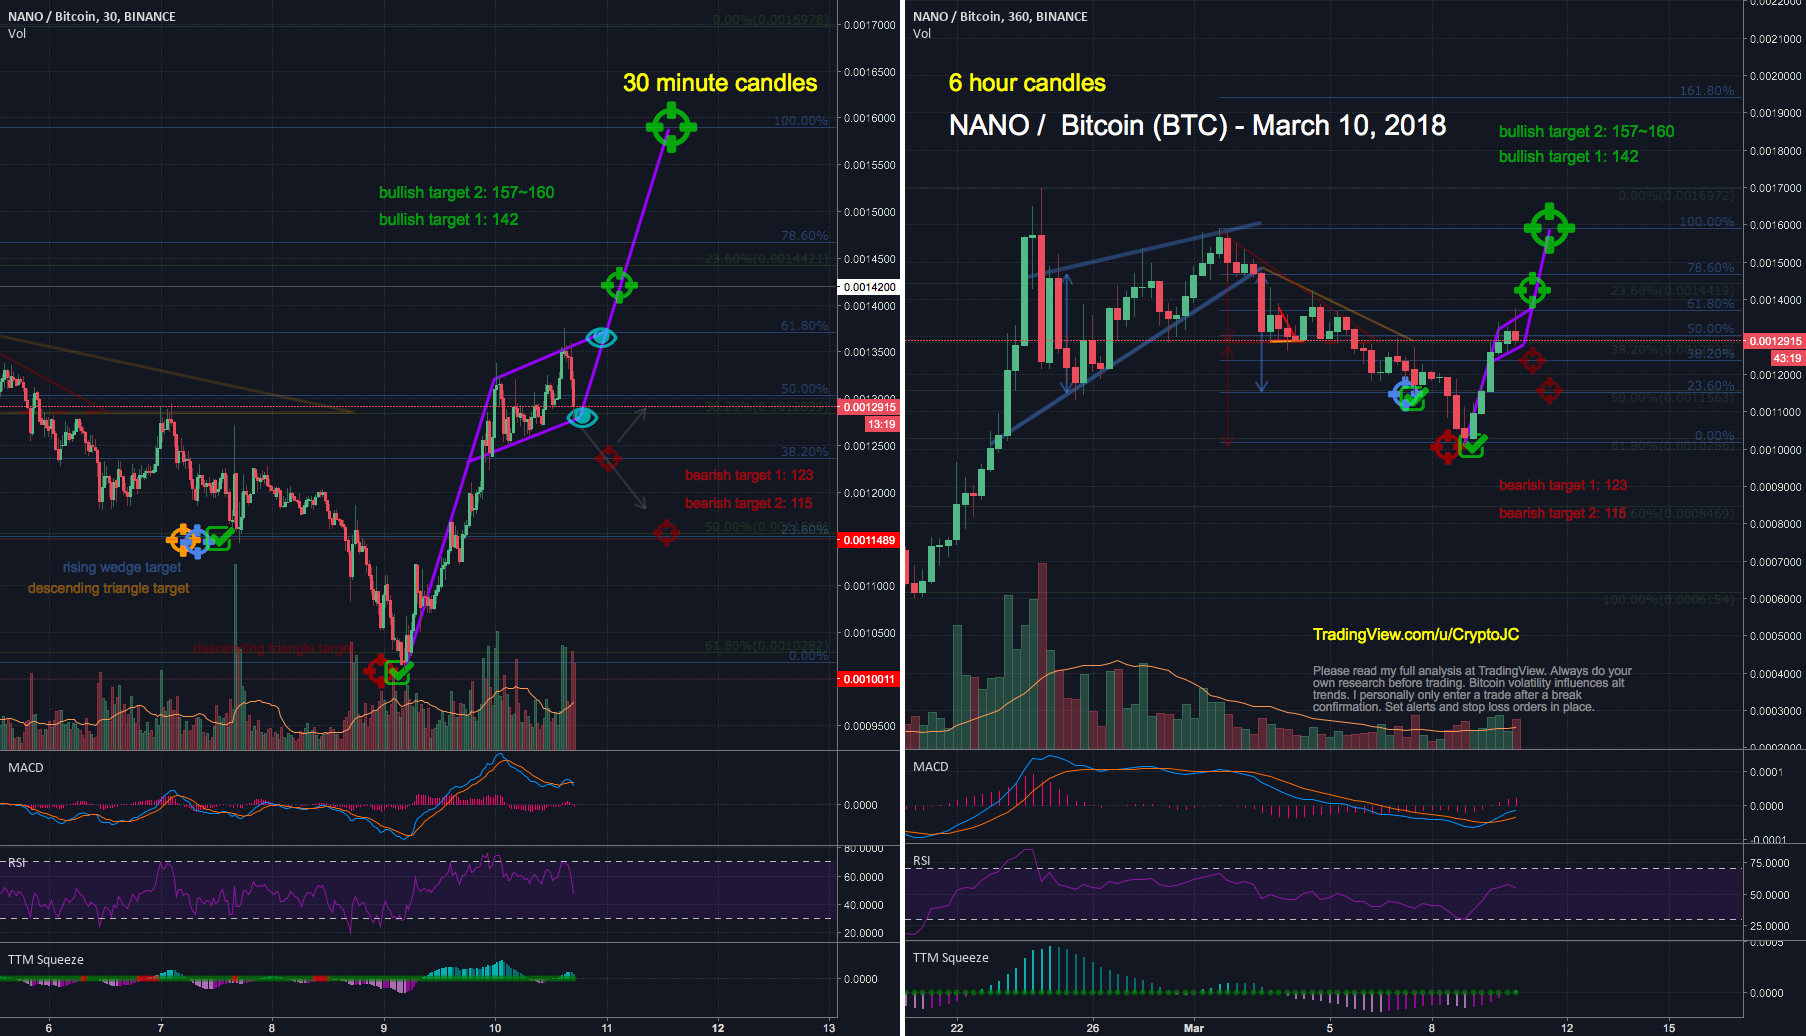 NANO Bullish after Bearish episode, pending imminent flag break